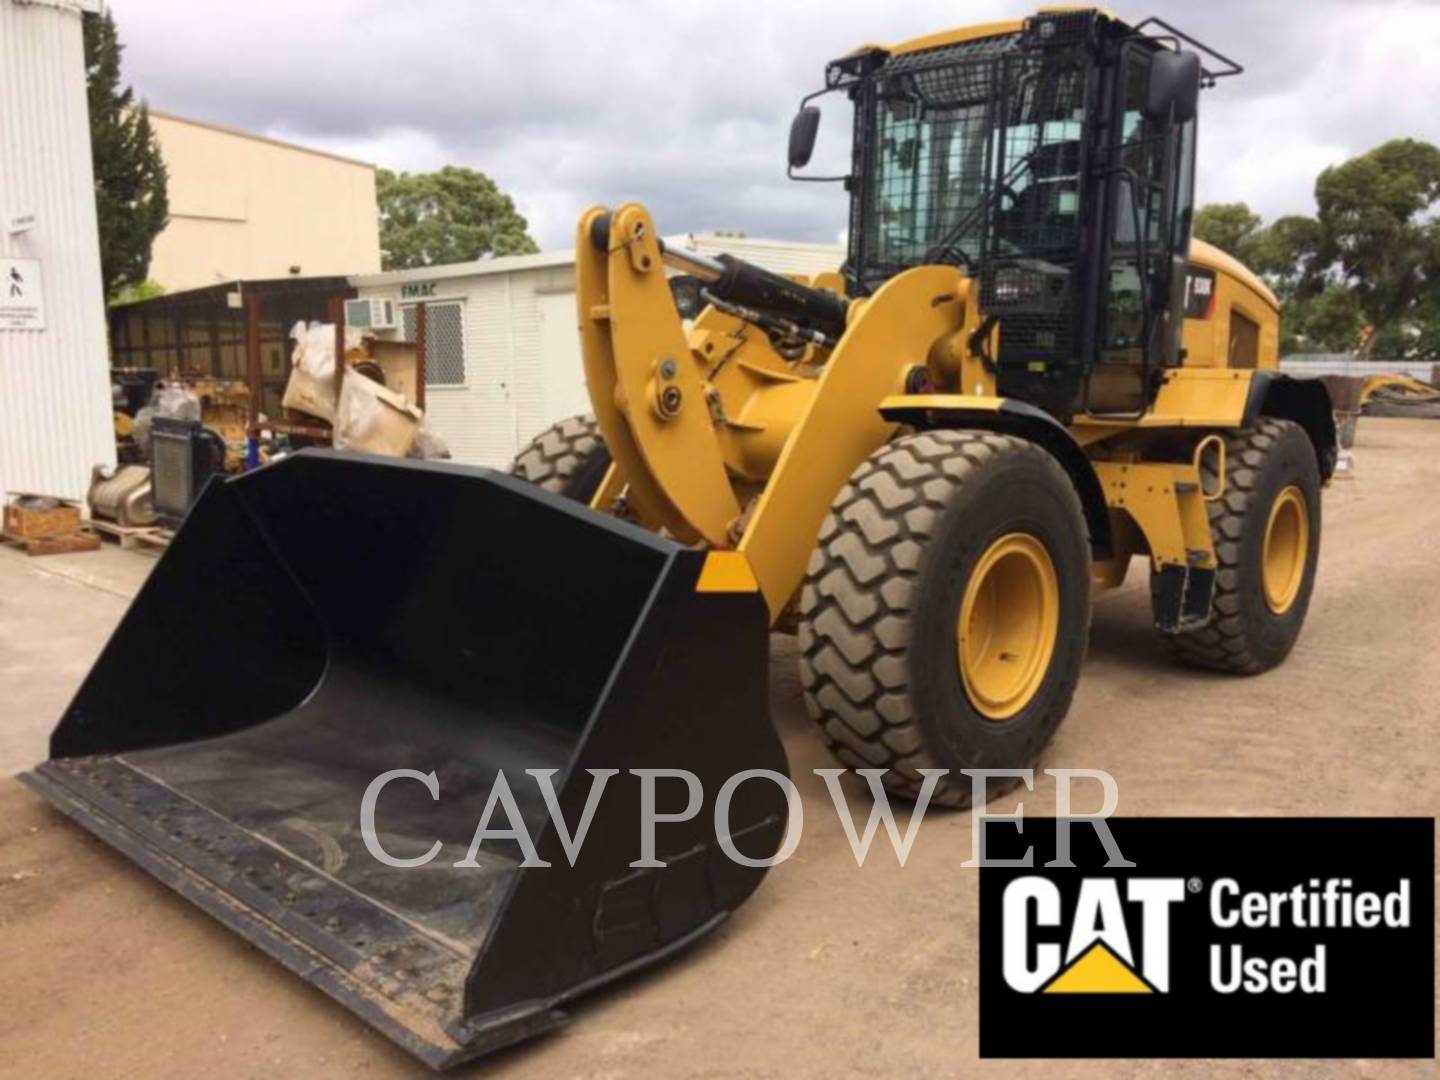 CATERPILLAR 930K Page | Cavpower